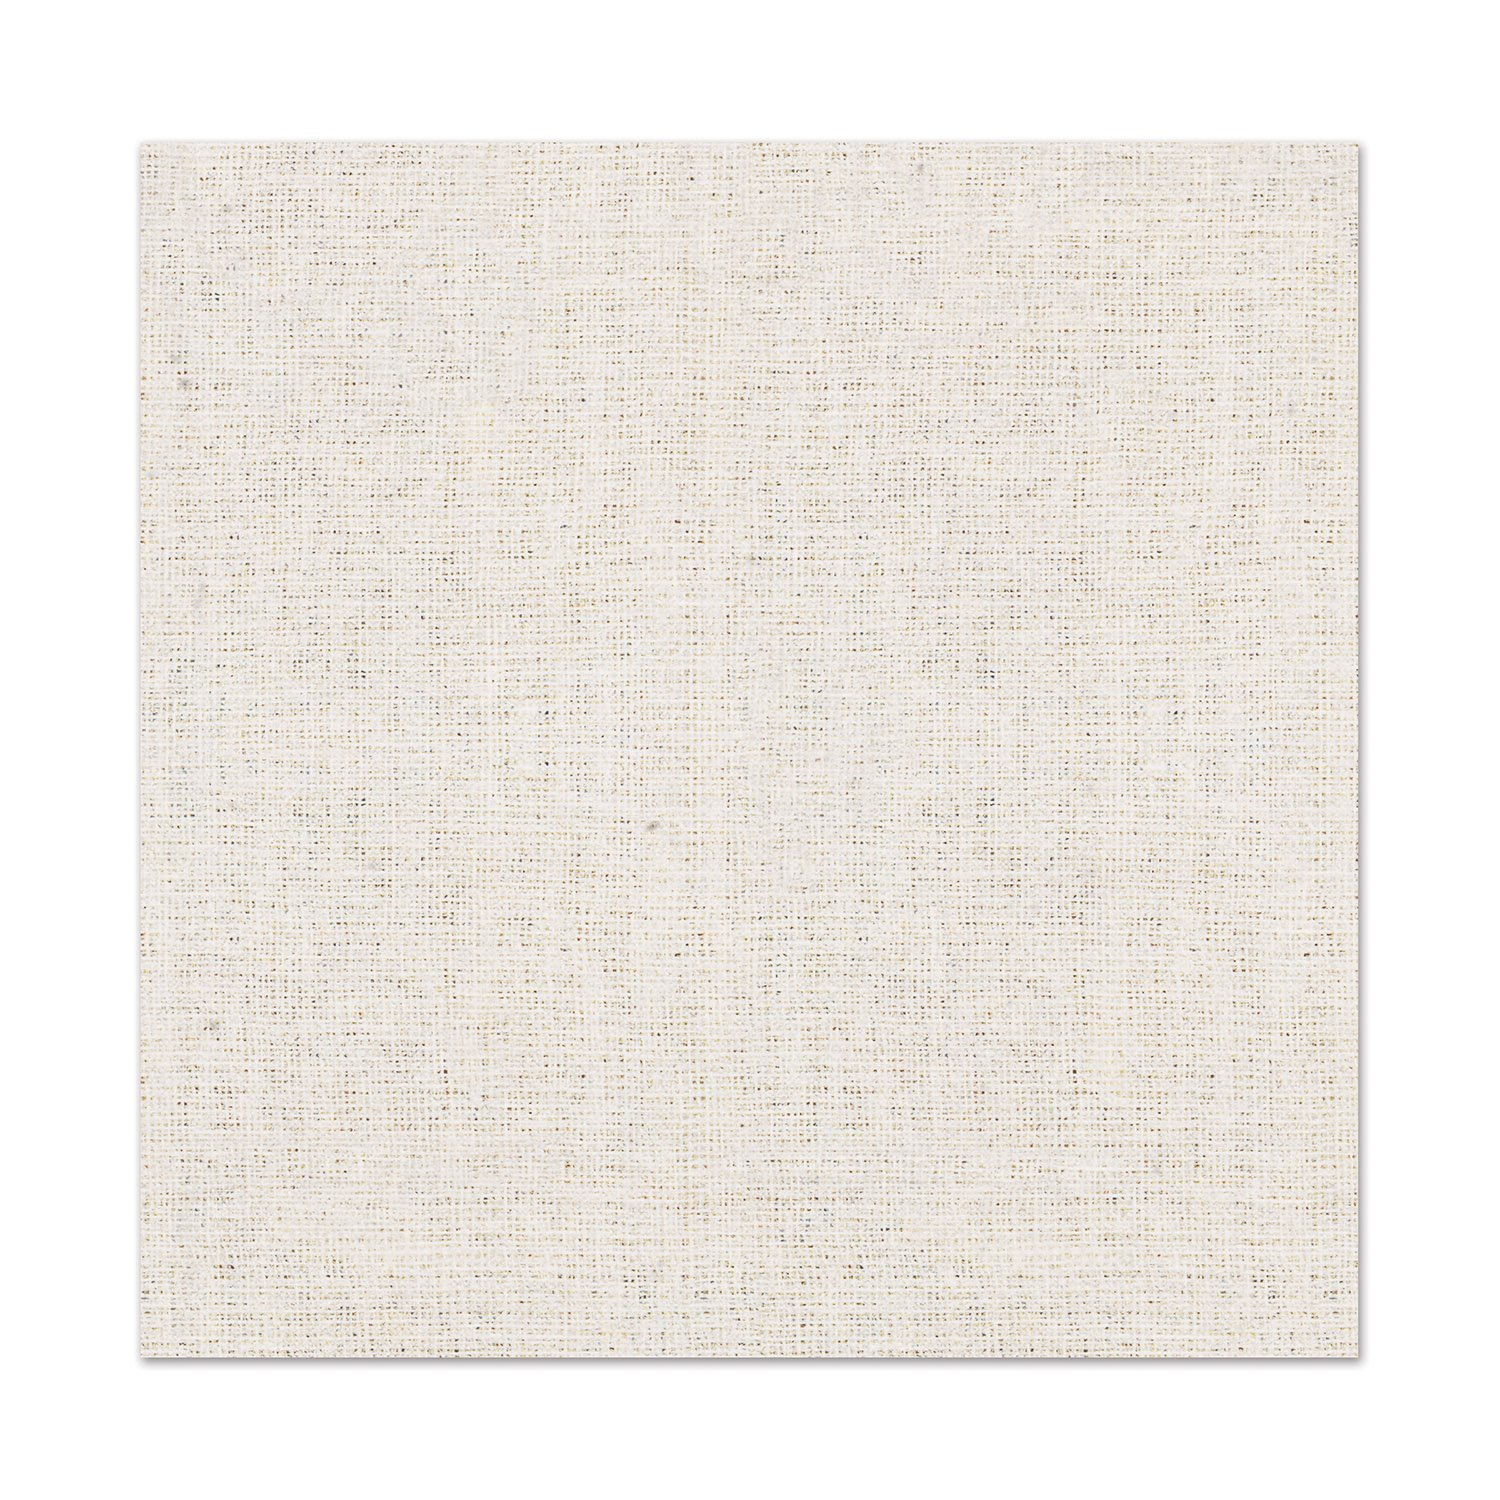 Beistle Club Pack Muslin Paper 2ply Paper Luncheon Napkins, Box Contains 192 Napkins by Beistle